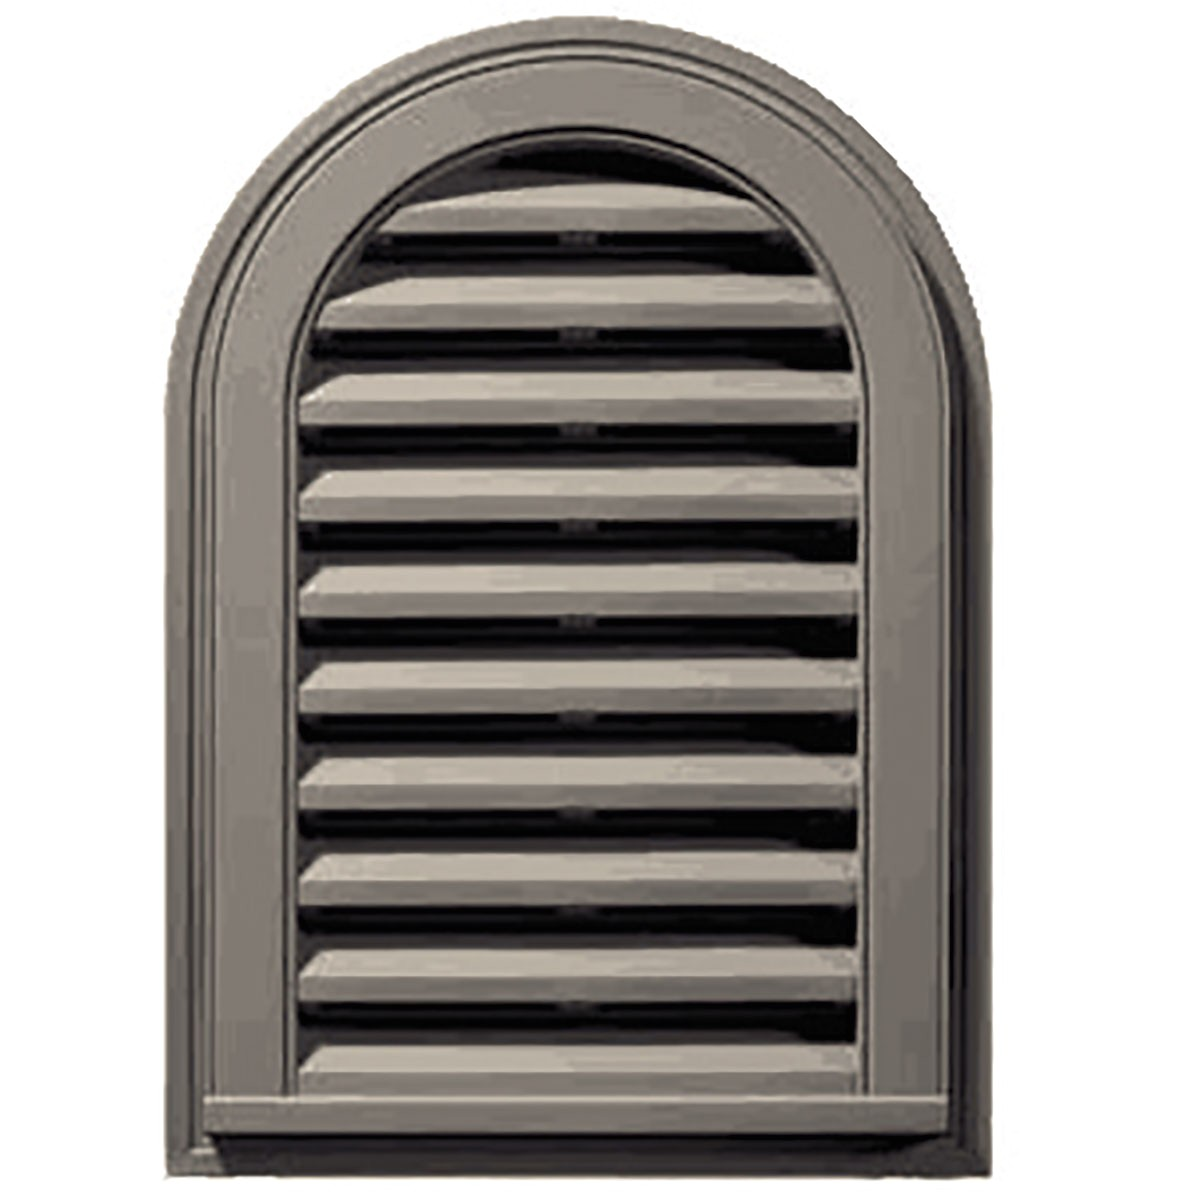 mid america gable master round top gable vents